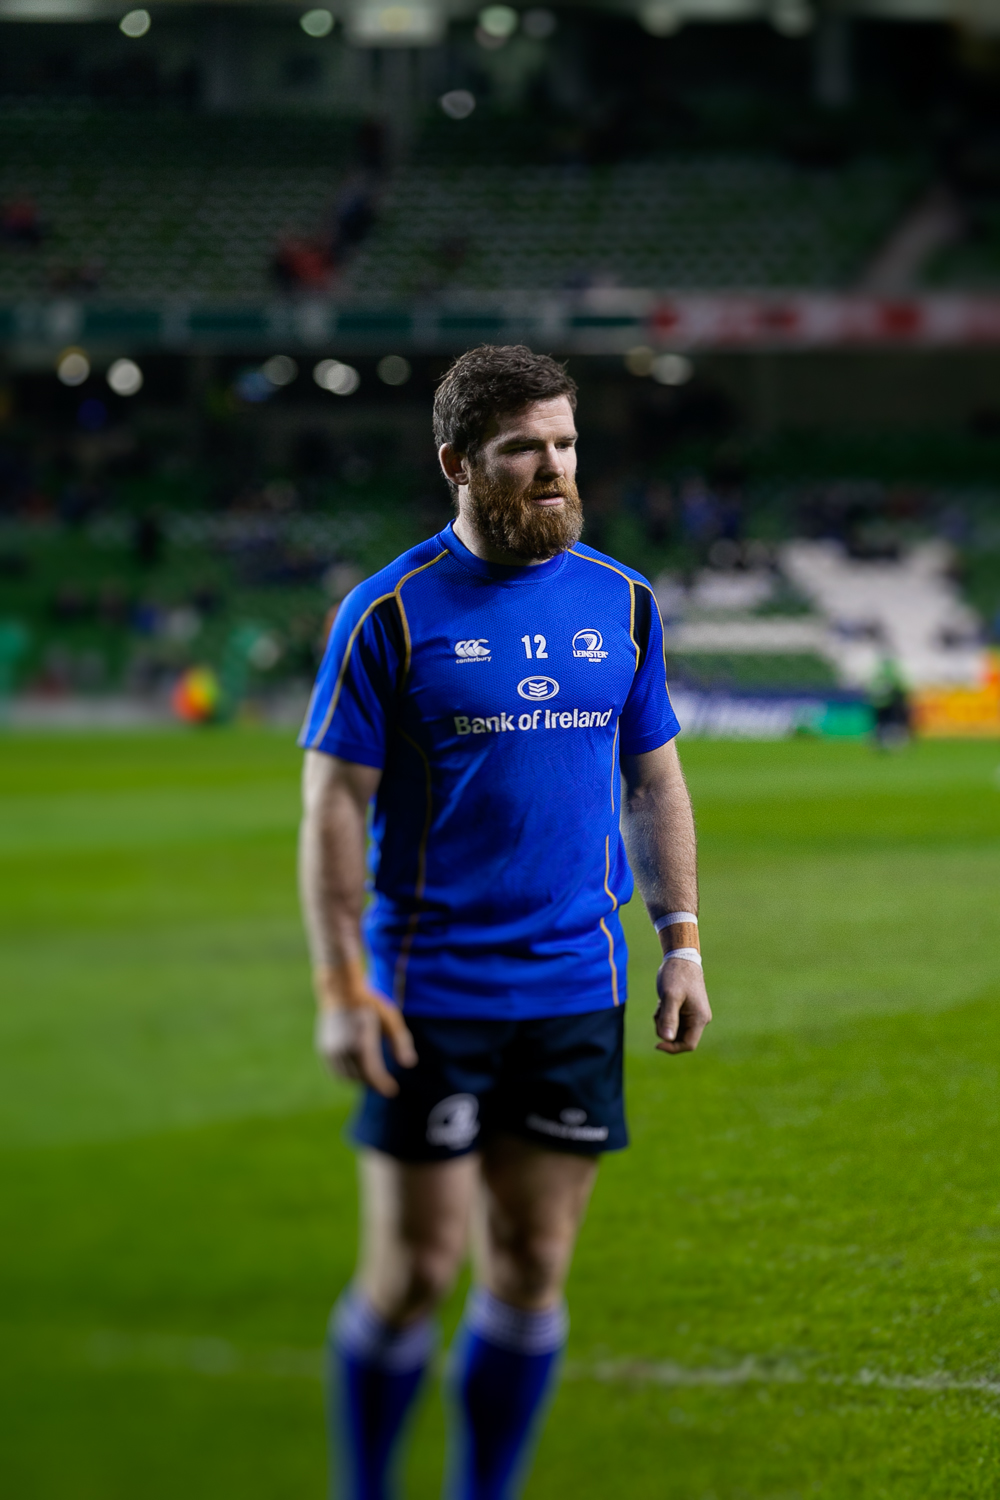 Leinster_vs_NorthamptonSaints-19